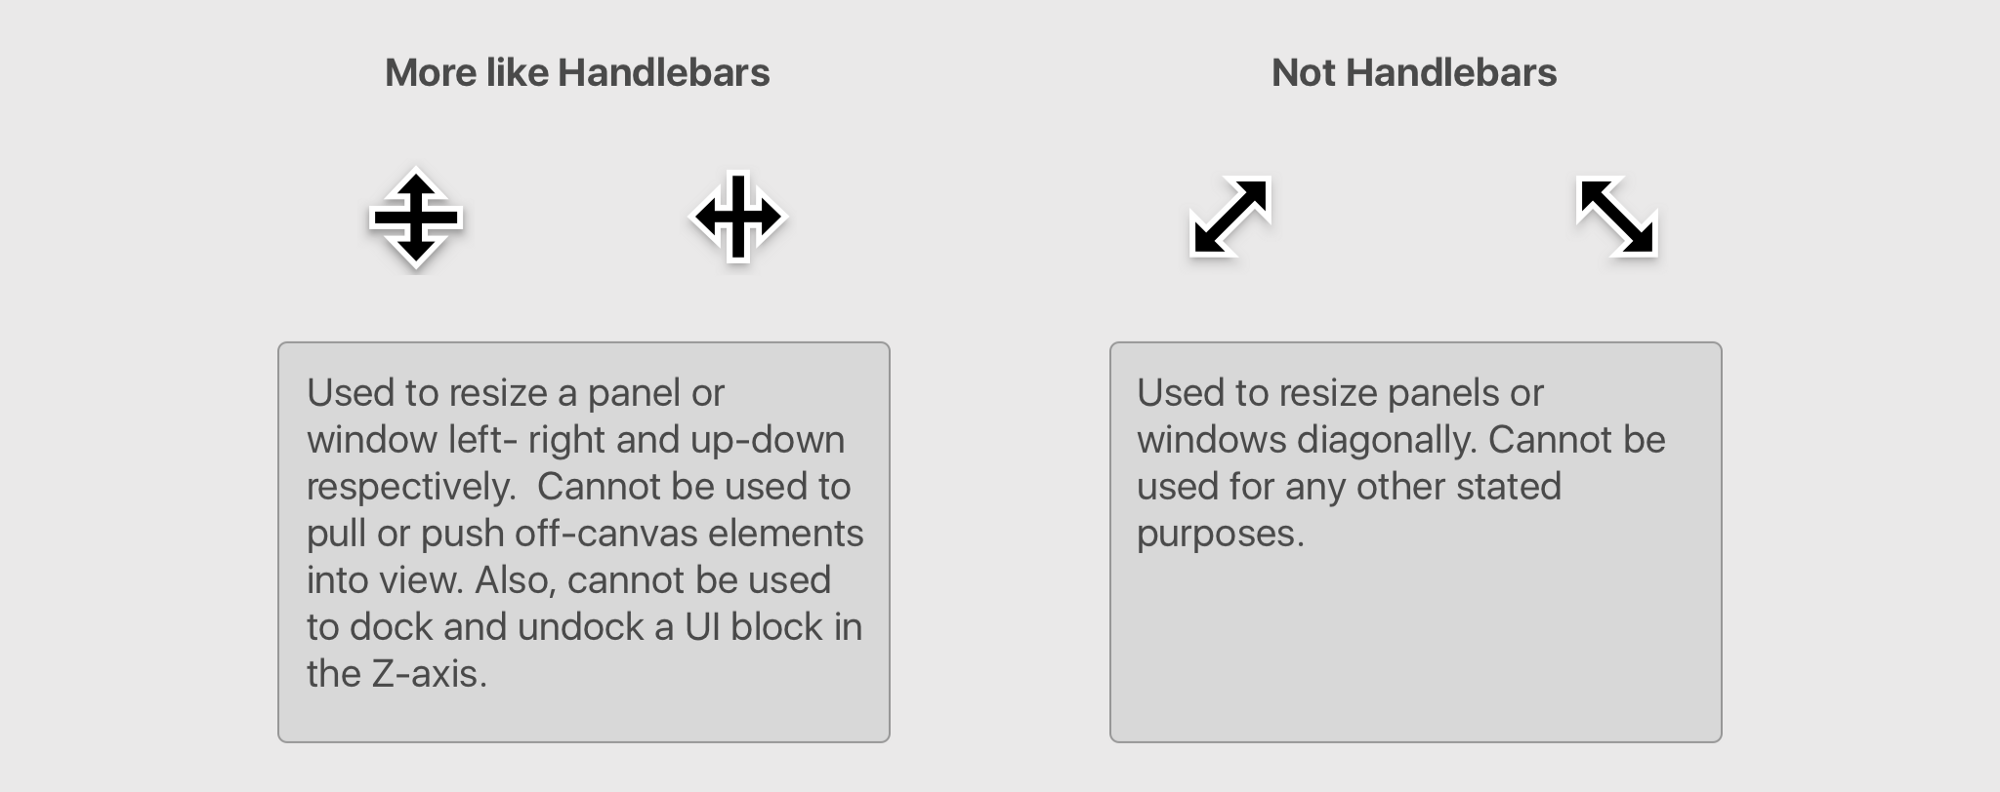 Handlebars in UI Design - UX Collective